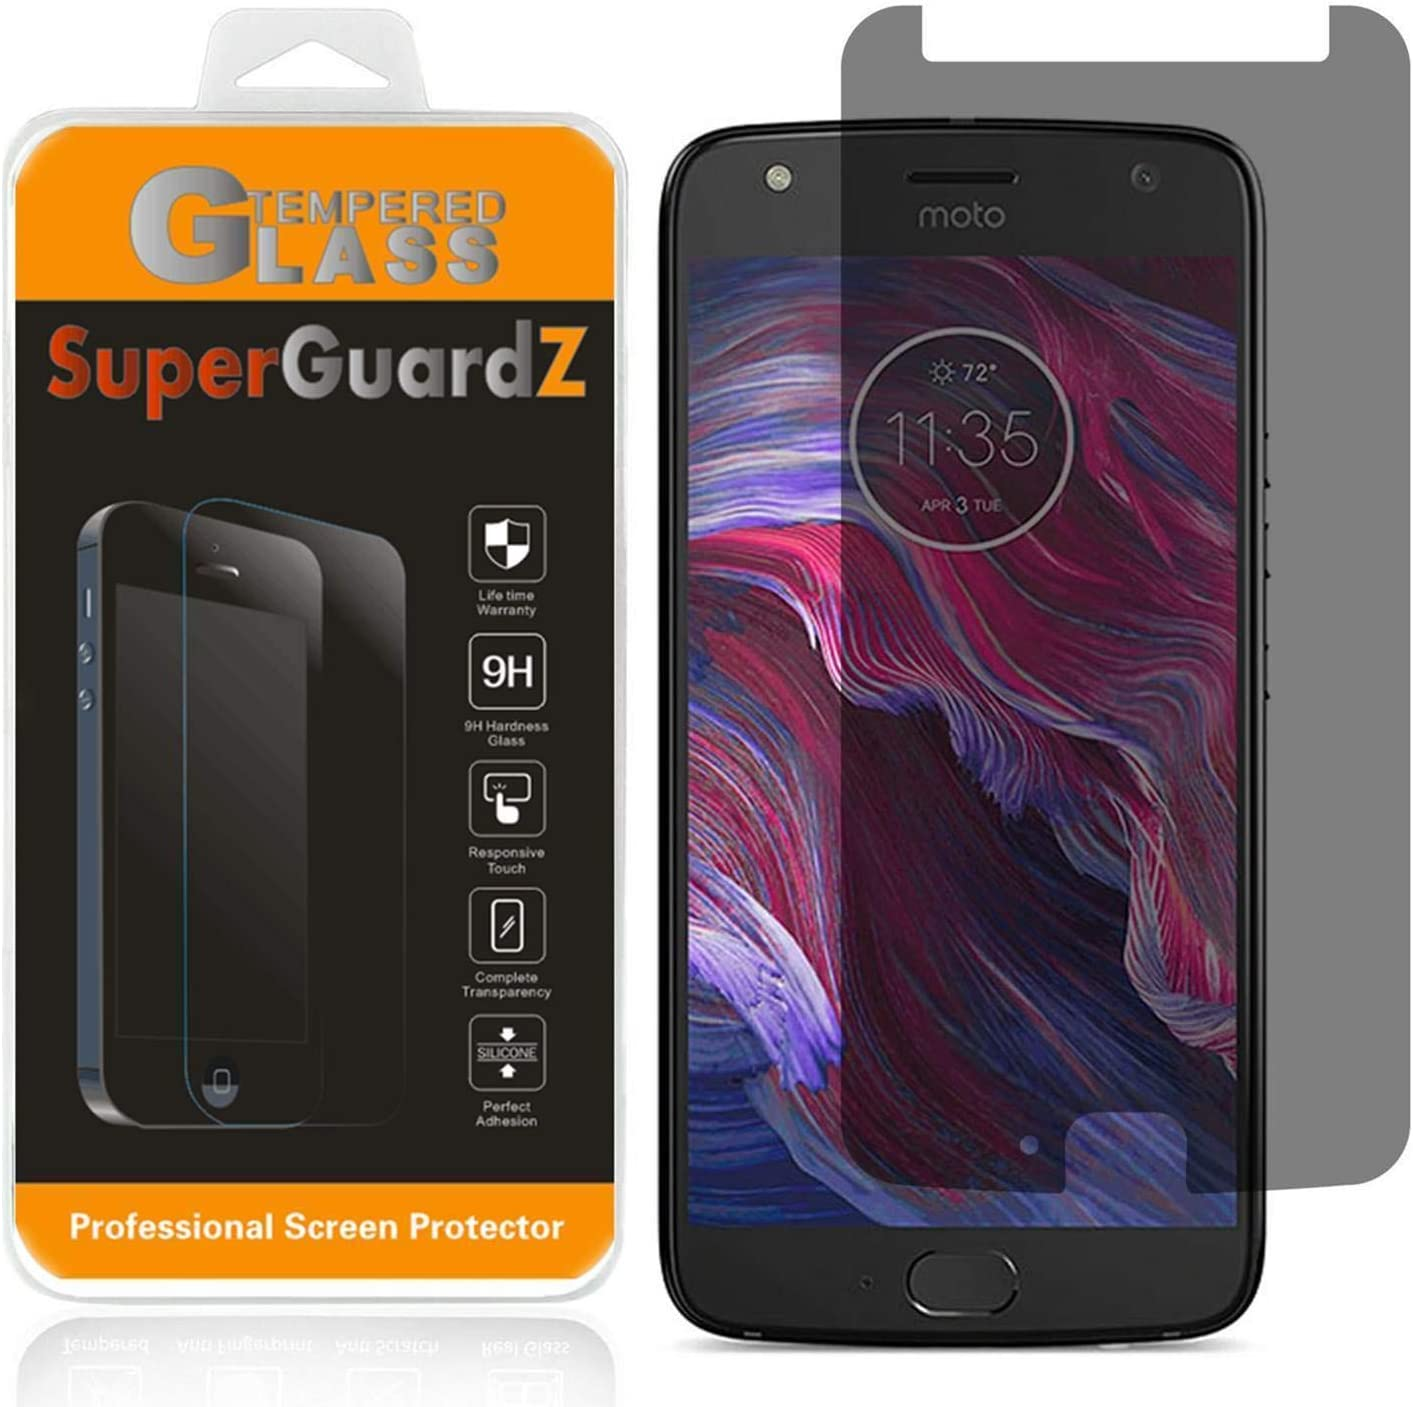 for Motorola Moto X4 Tempered Glass Screen Protector [Privacy Anti-Spy], SuperGuardZ, 9H Anti-Scratch, 2.5D Round Edge, Anti-Bubble [Lifetime Replacements]